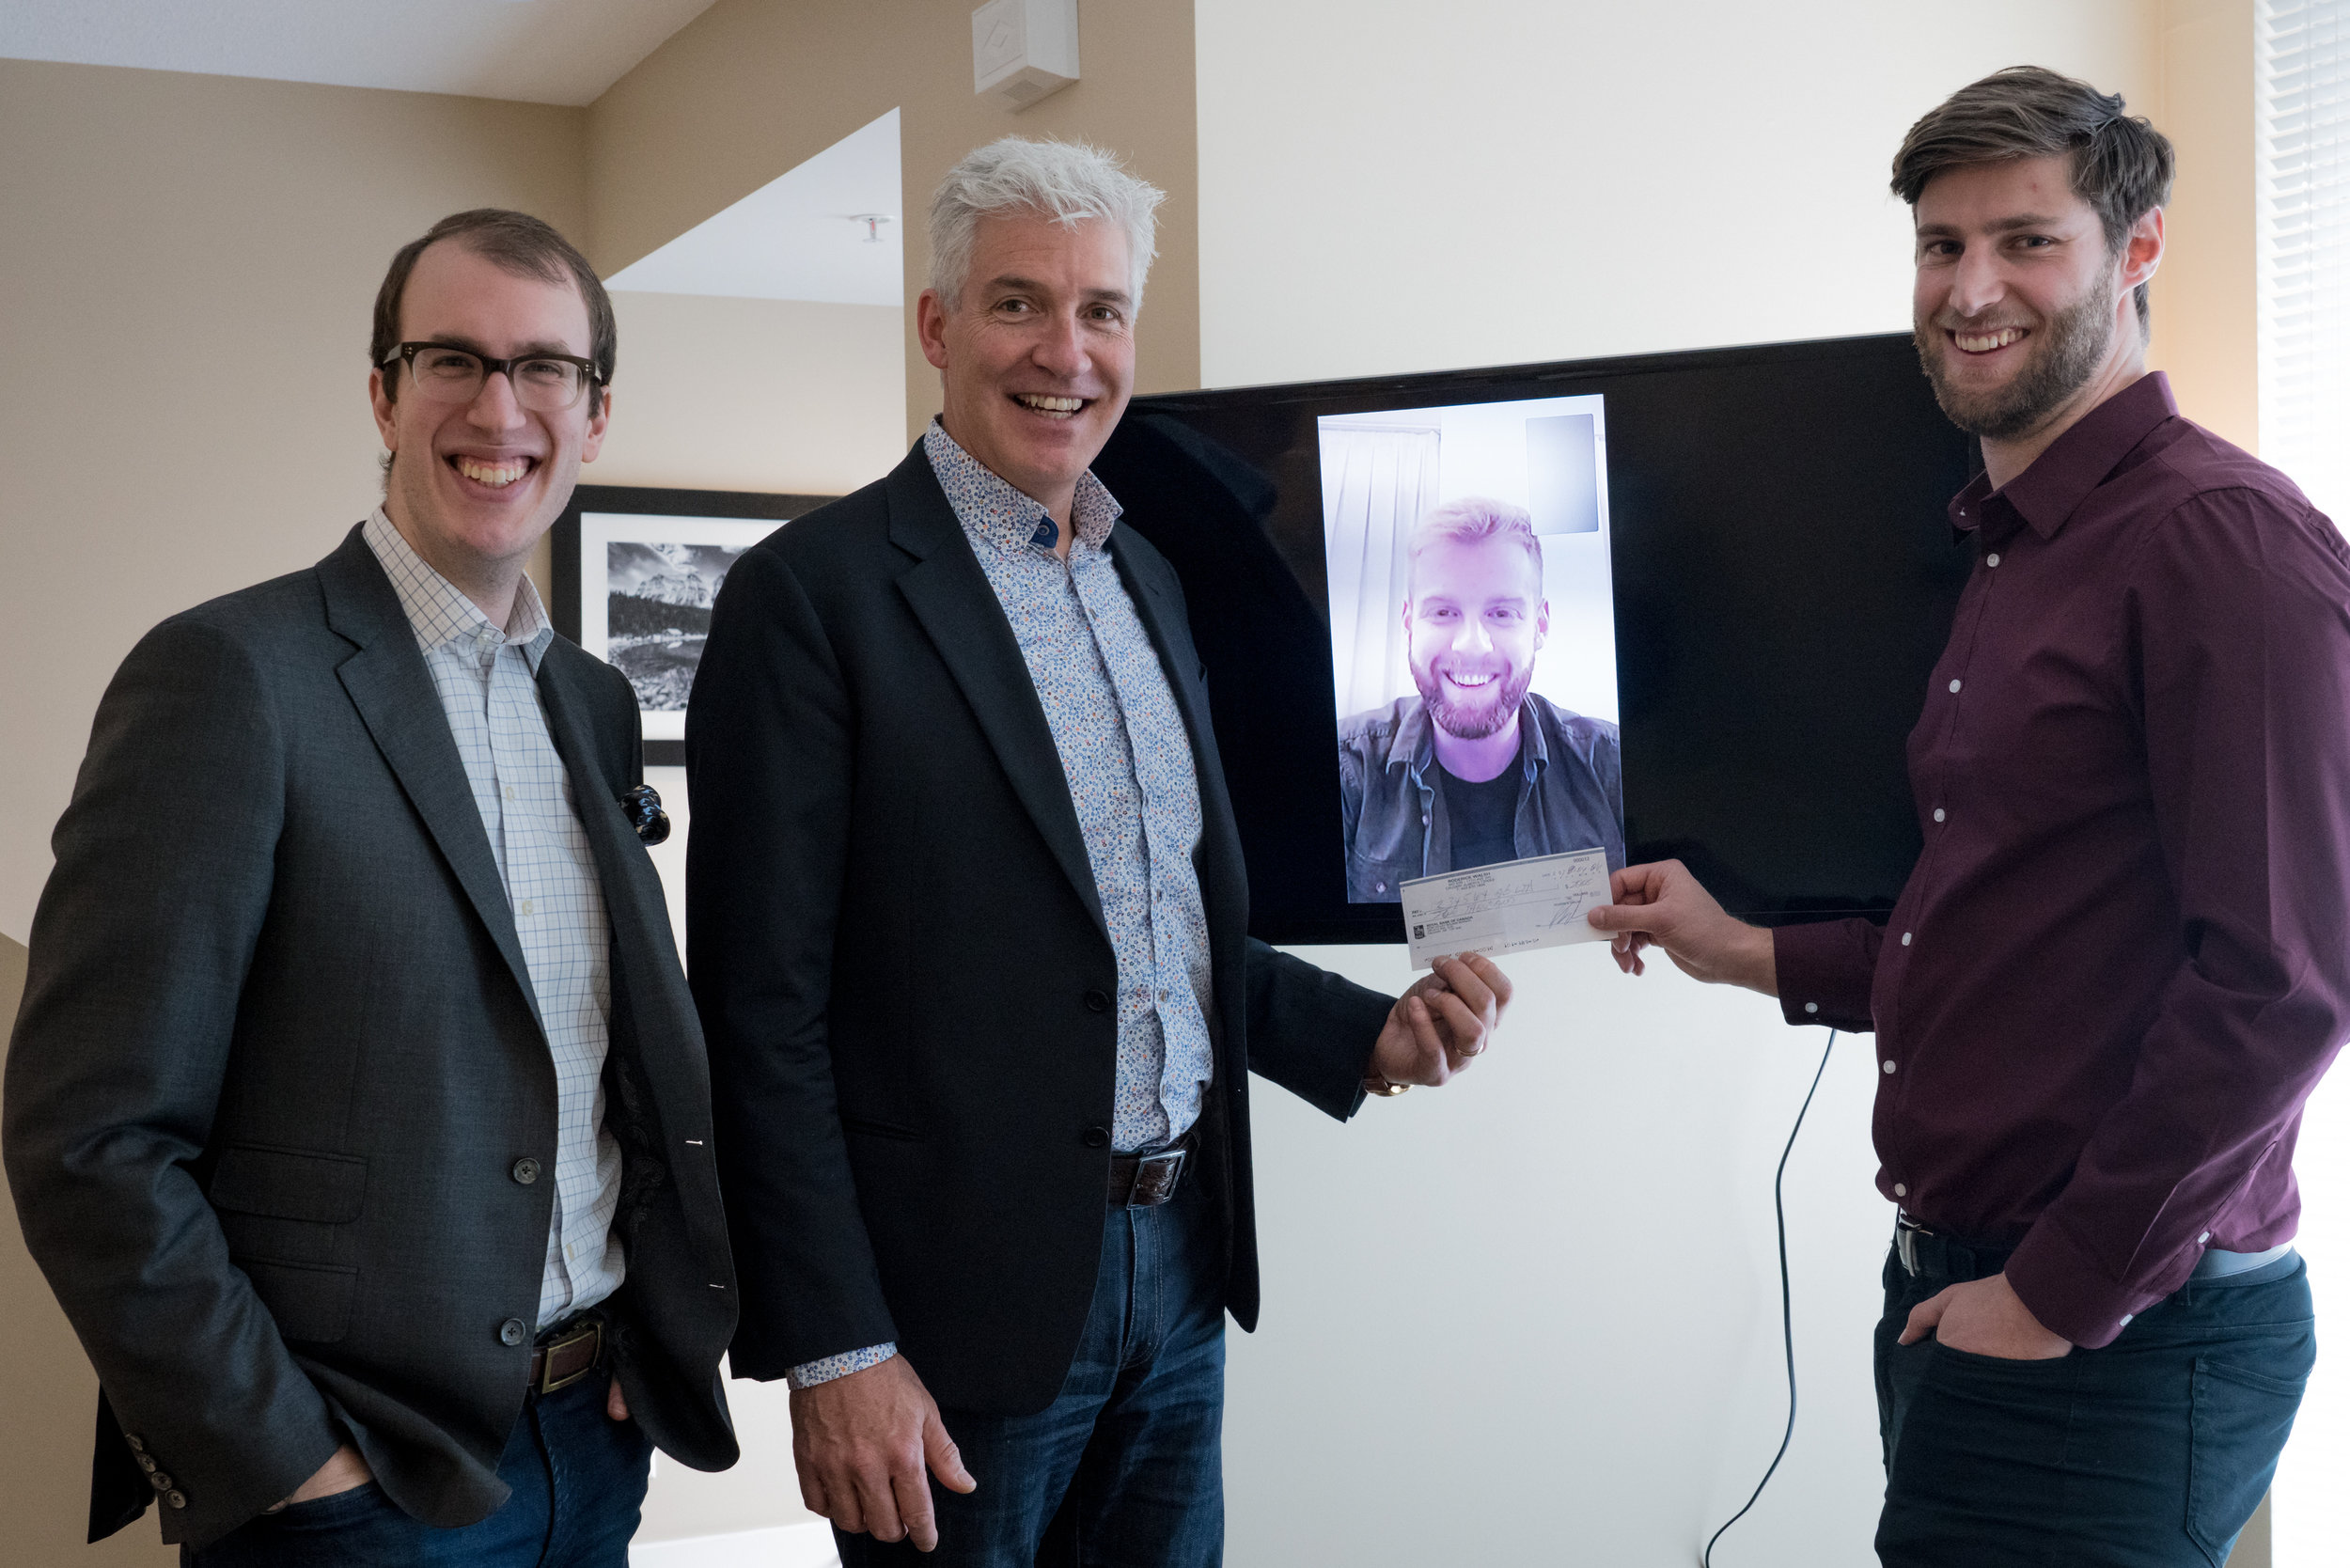 WM Wealth Representatives Mathew McDowell and Rod Walsh (left) with Brett Walsh (screen) and Calgary Premier League Director Jarron Meuller (right).